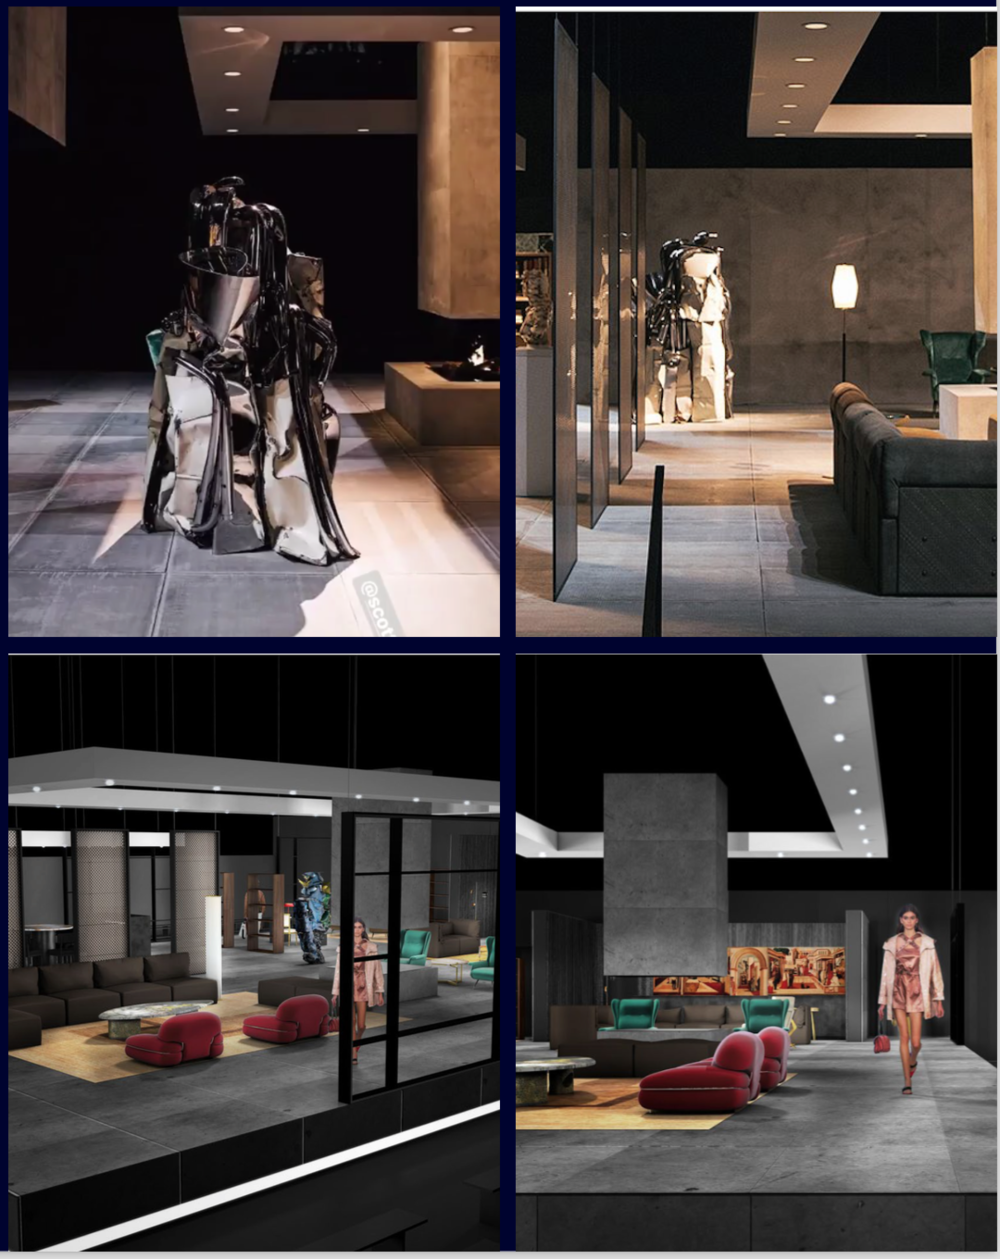 Bottega Veneta 2018 NYFW - House BV secured the American Stock Exchange as a venue (a loaded metaphor in this turbulent week on Wall Street) and built out a set complete with a working fireplace and a John Chamberlain sculpture.